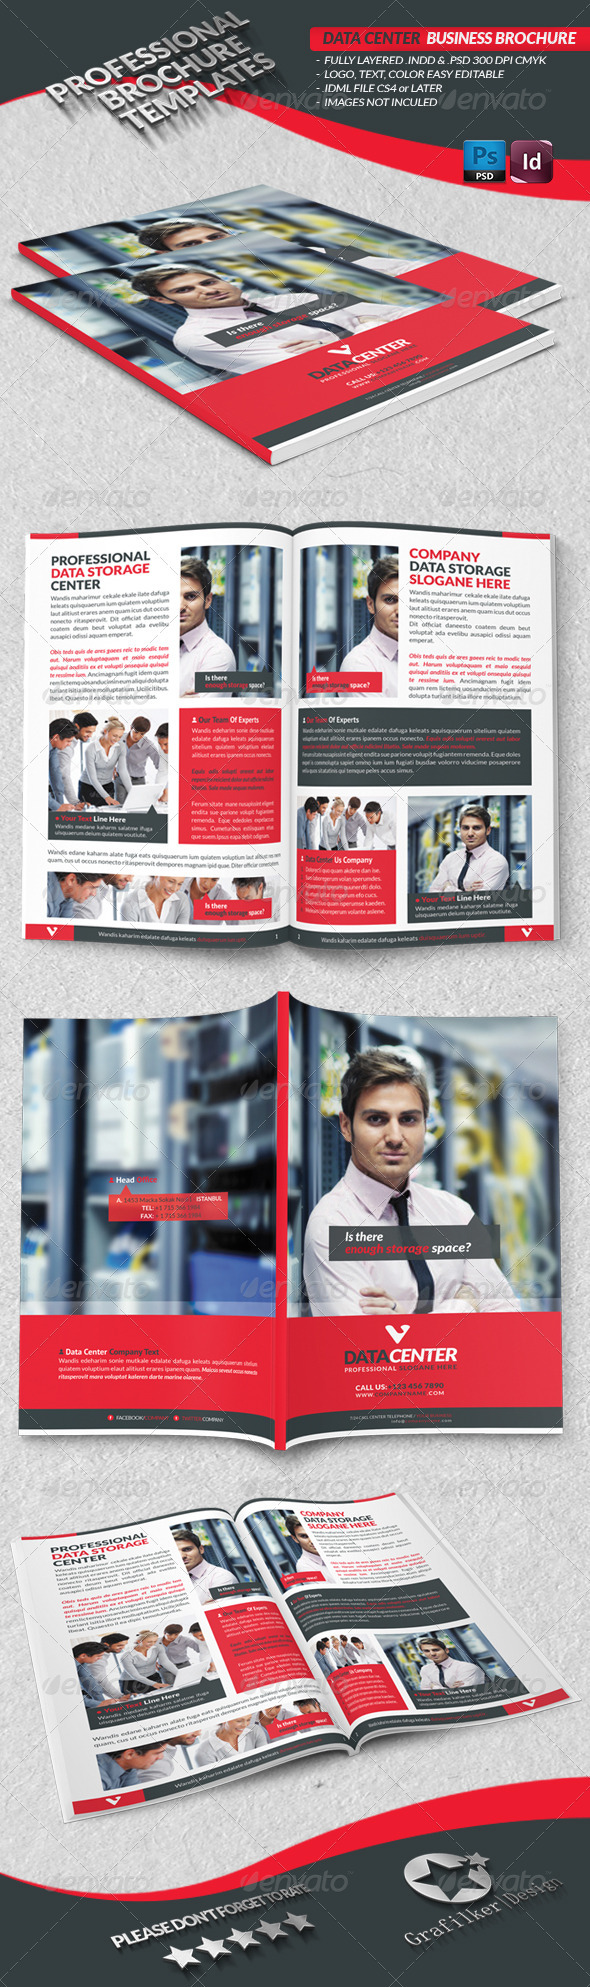 GraphicRiver Data Center Business Brochure 3685667